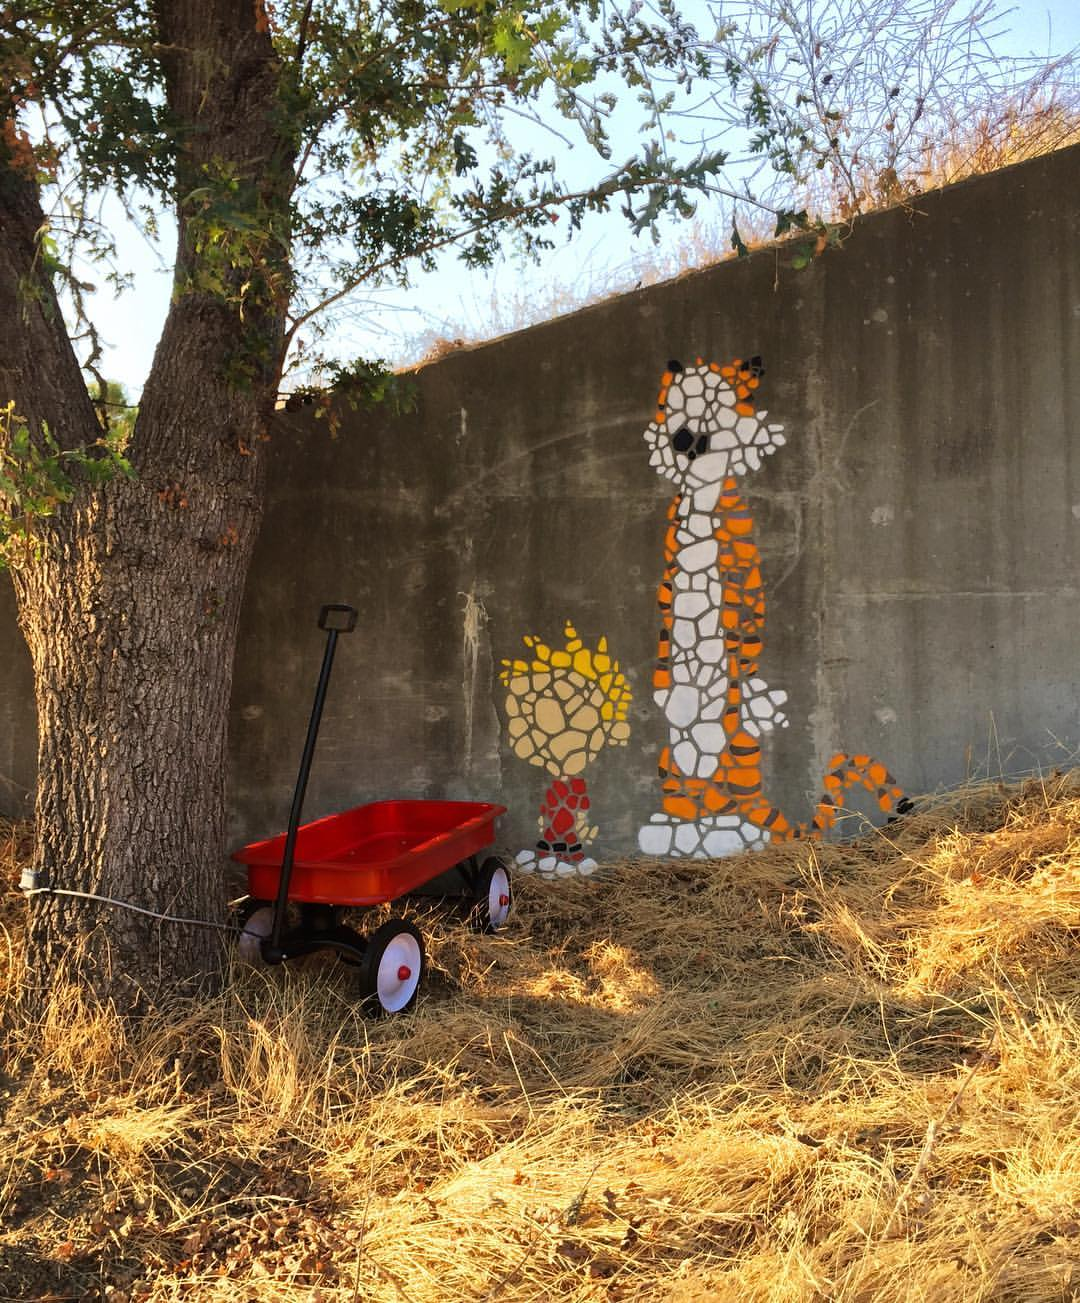 Girafa in San Jose, California. Found via @powwowworldwide.